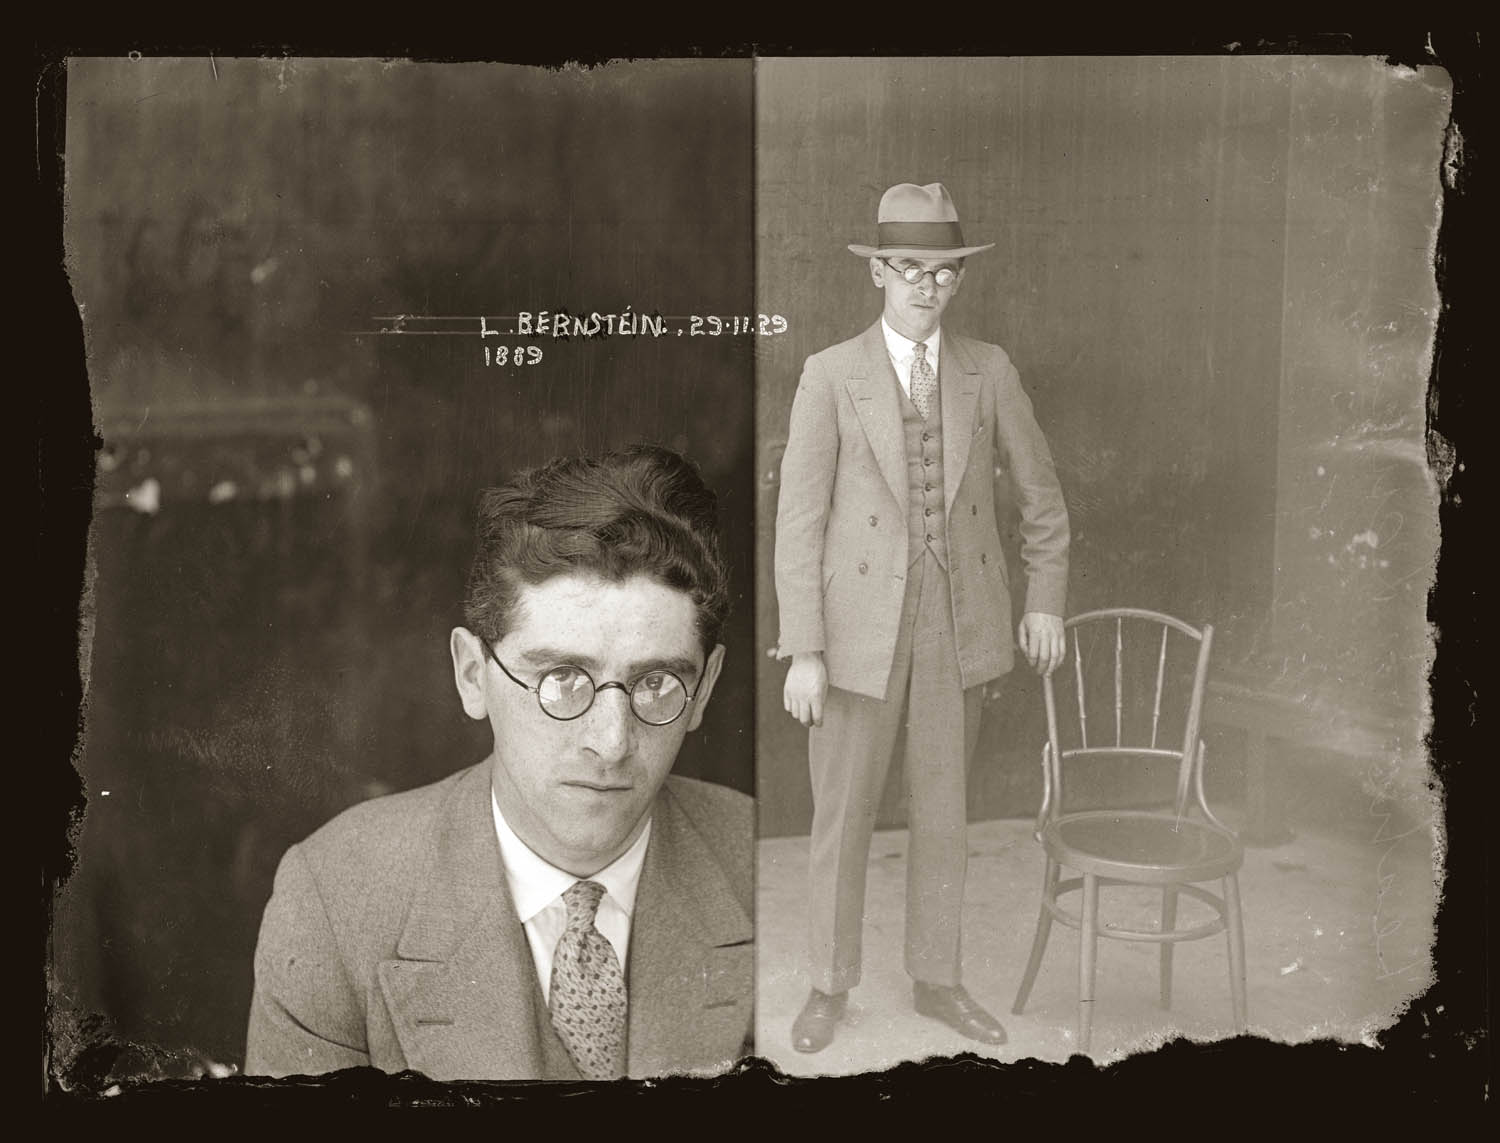 Mug shot of Leslie Louis Bernstein, 29 November 1929, Central cells.